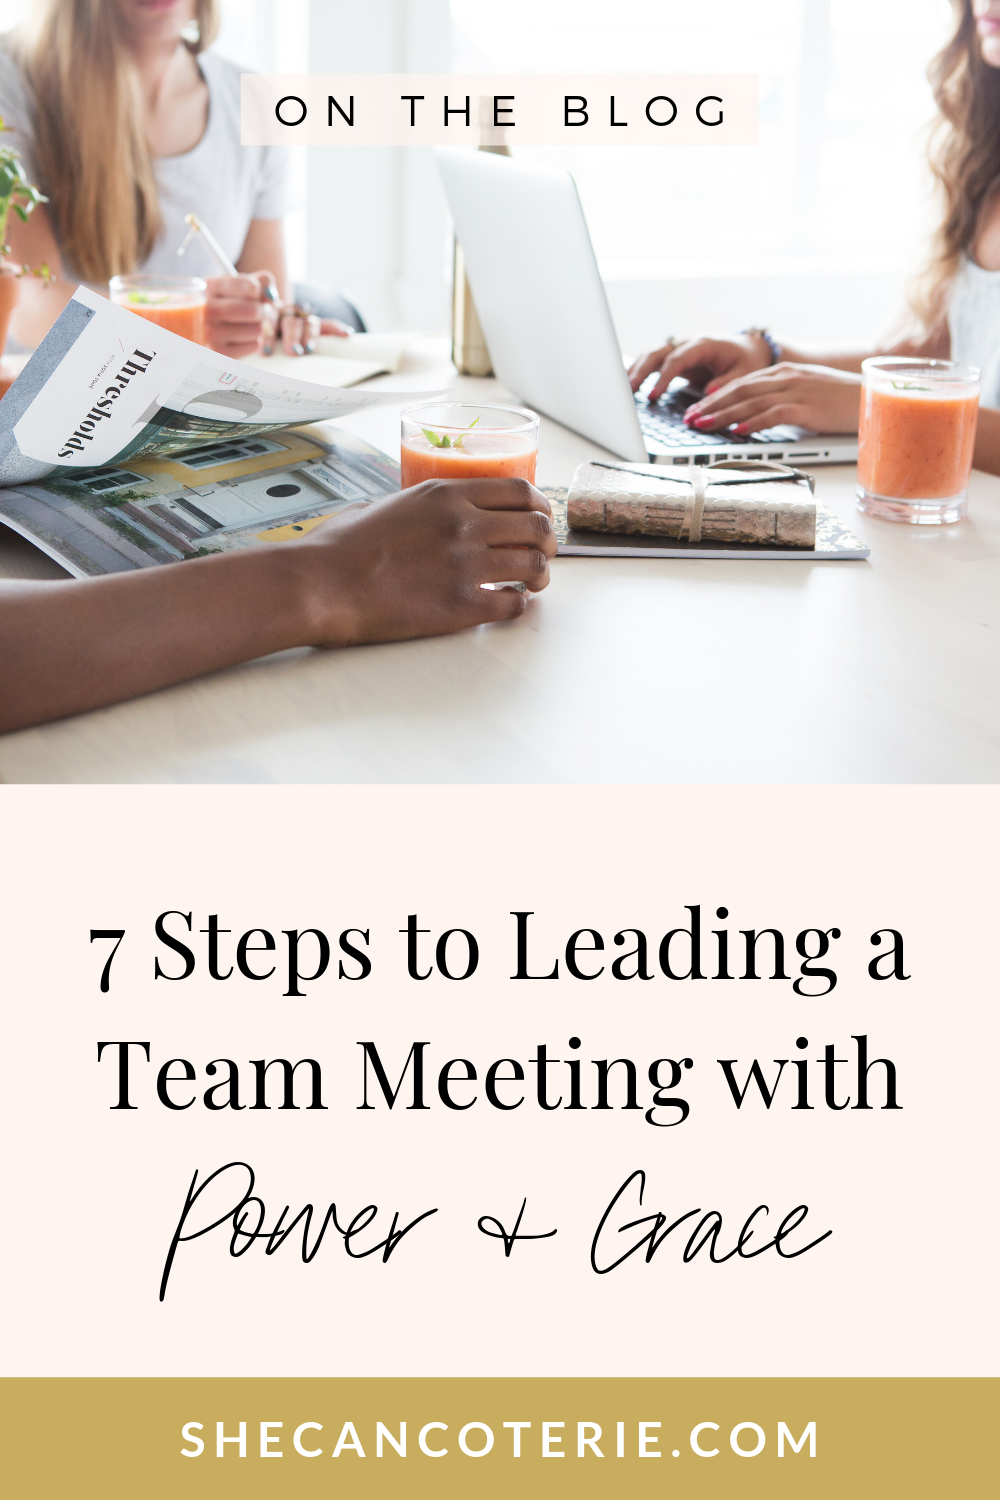 7 Steps to Leading a Team Meeting with Power and Grace | SheCanCoterie.com